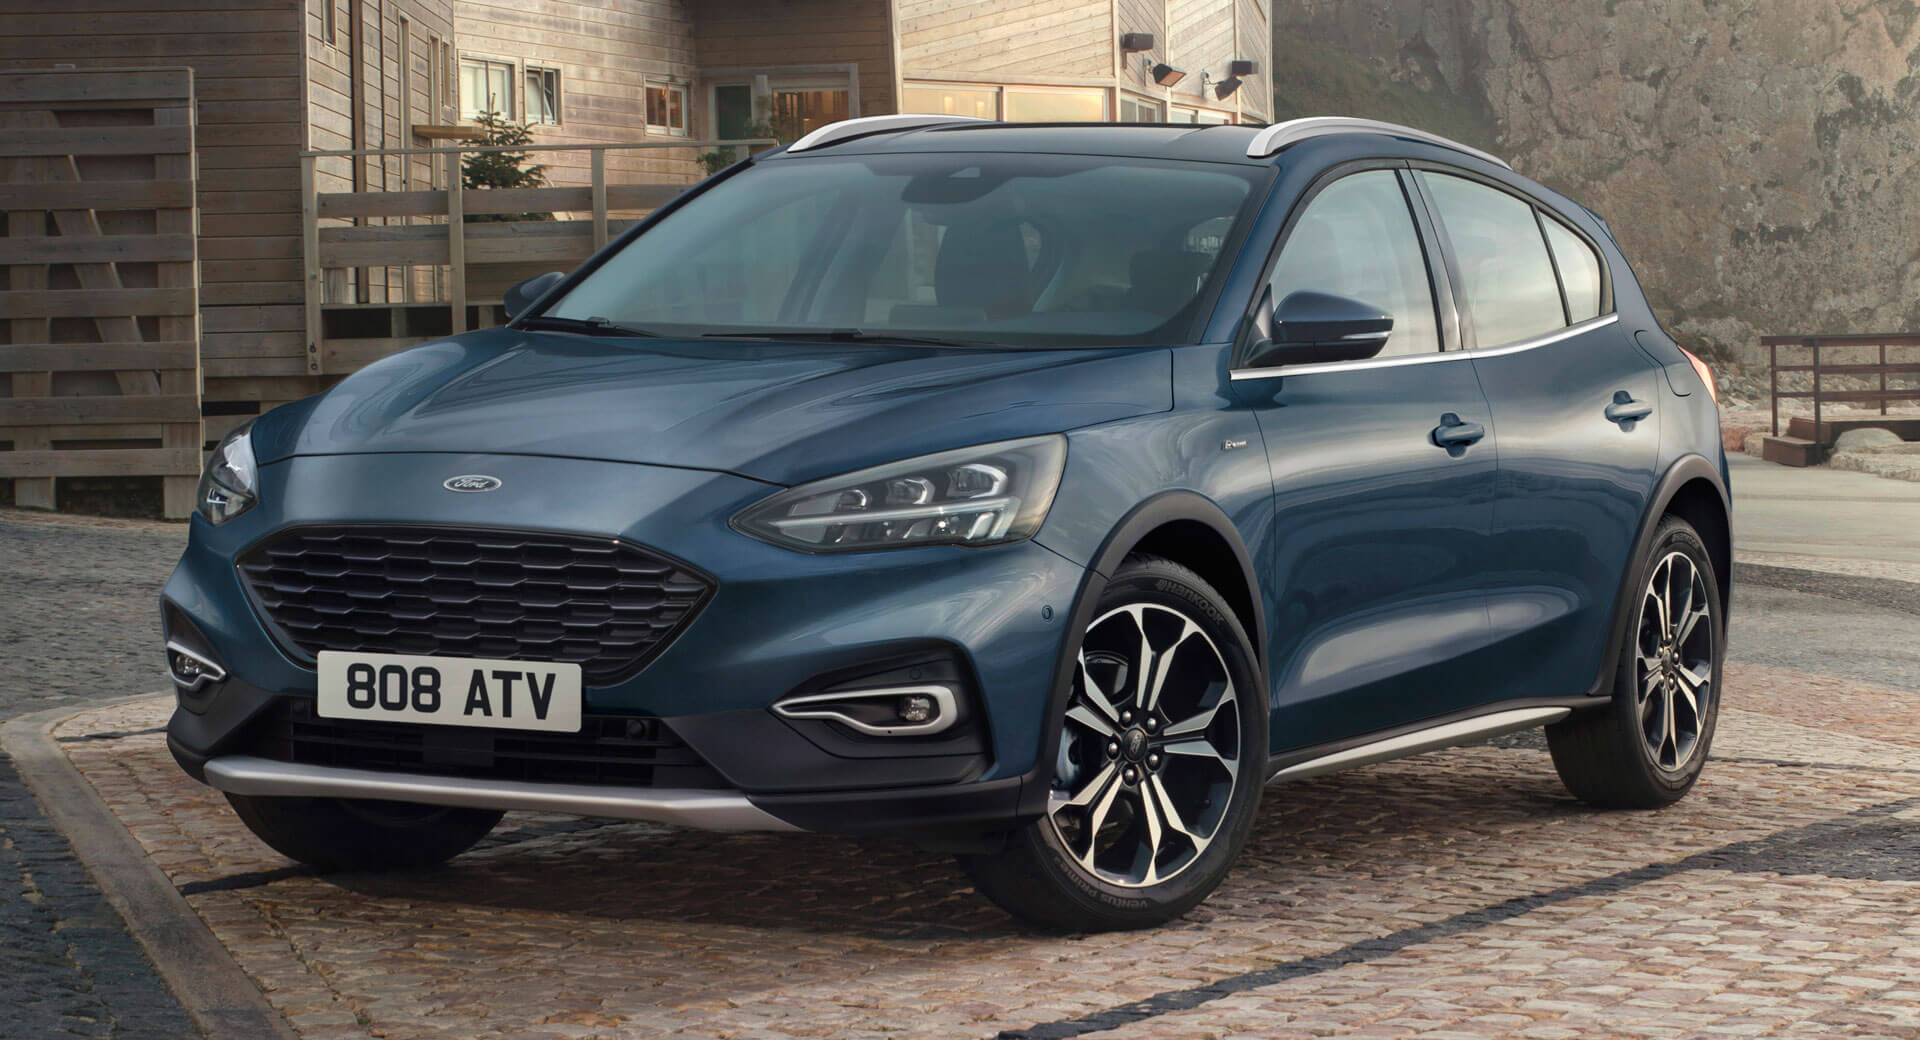 2020 Ford Focus Active X Tries An Upmarket Approach With